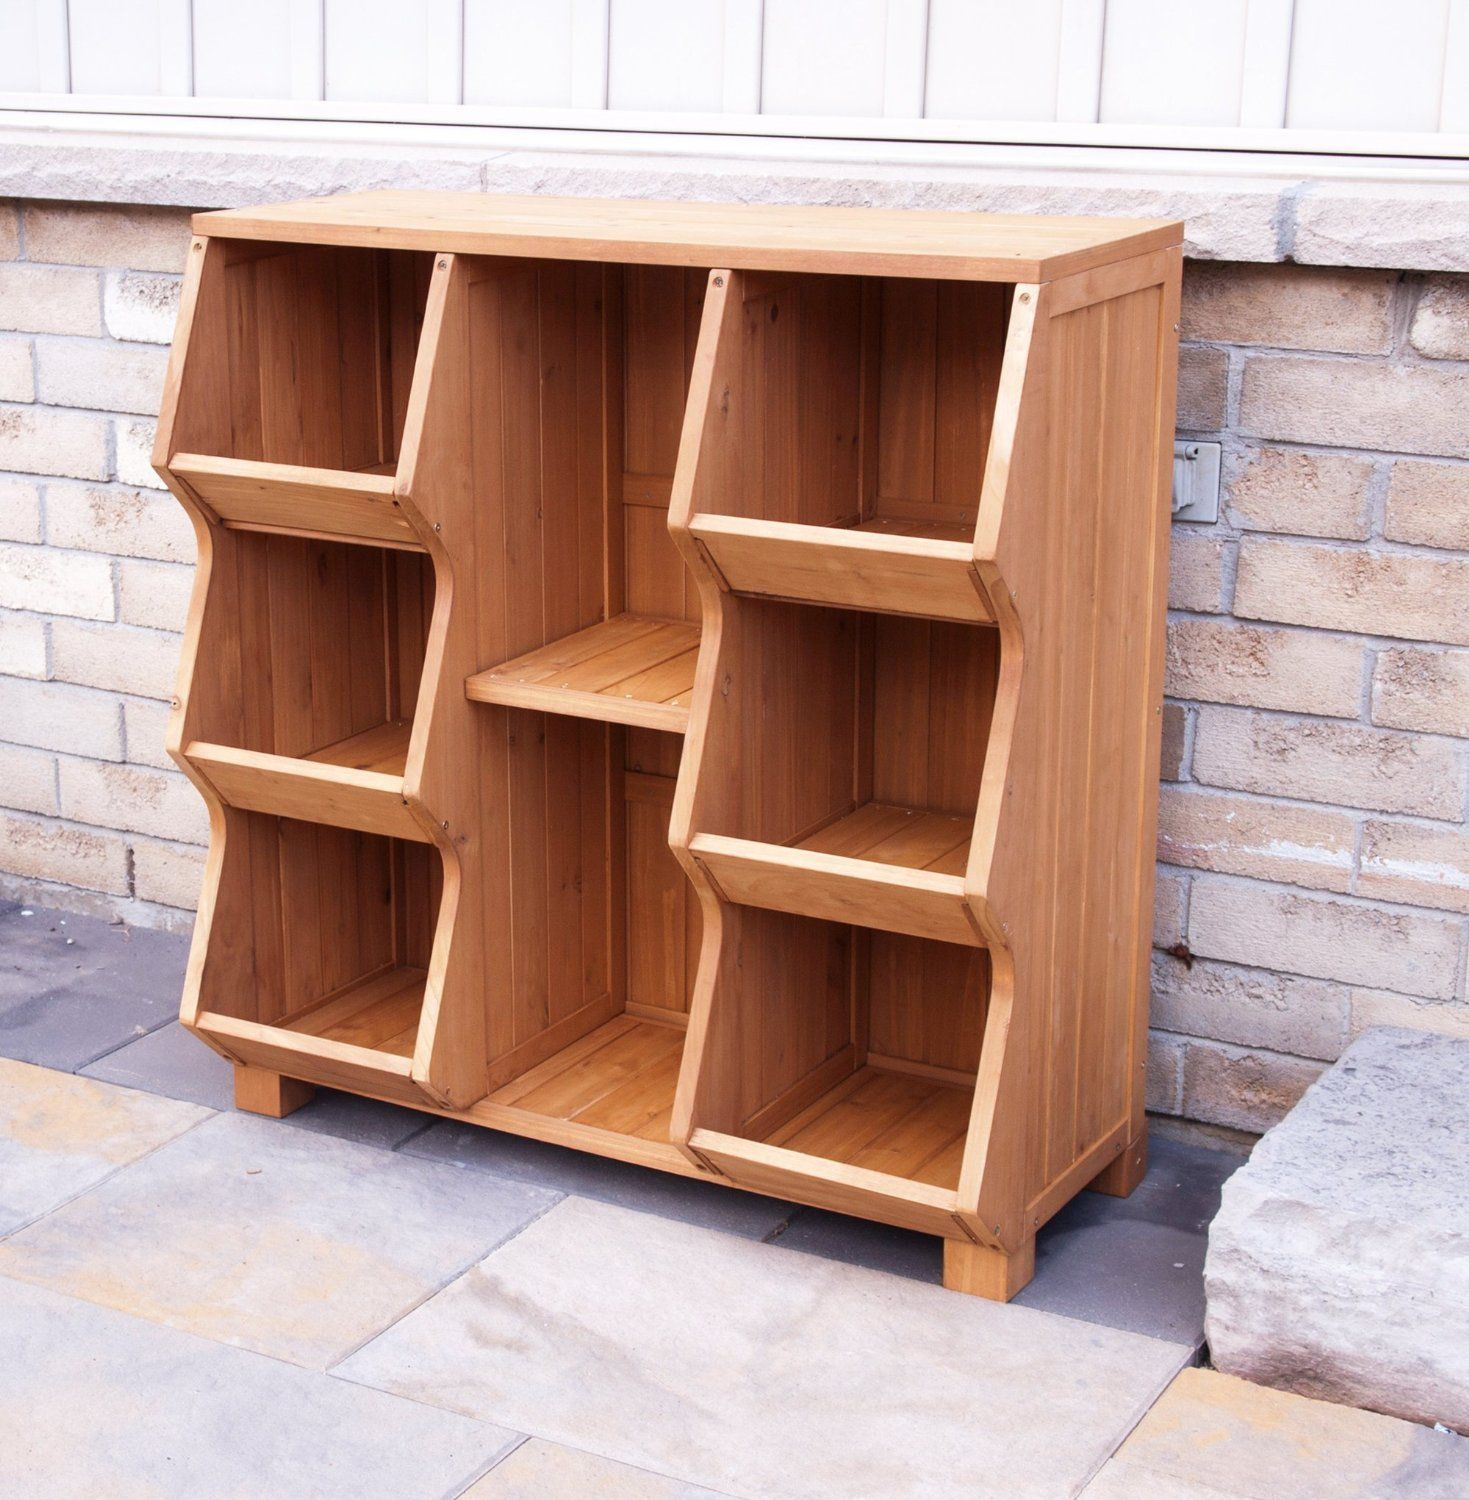 Storage cabinet/book case includes 6 storage bins and a top shelf for extra display/storage space. Use in Kid's room play area family room entryway or anywhere additional storage is .